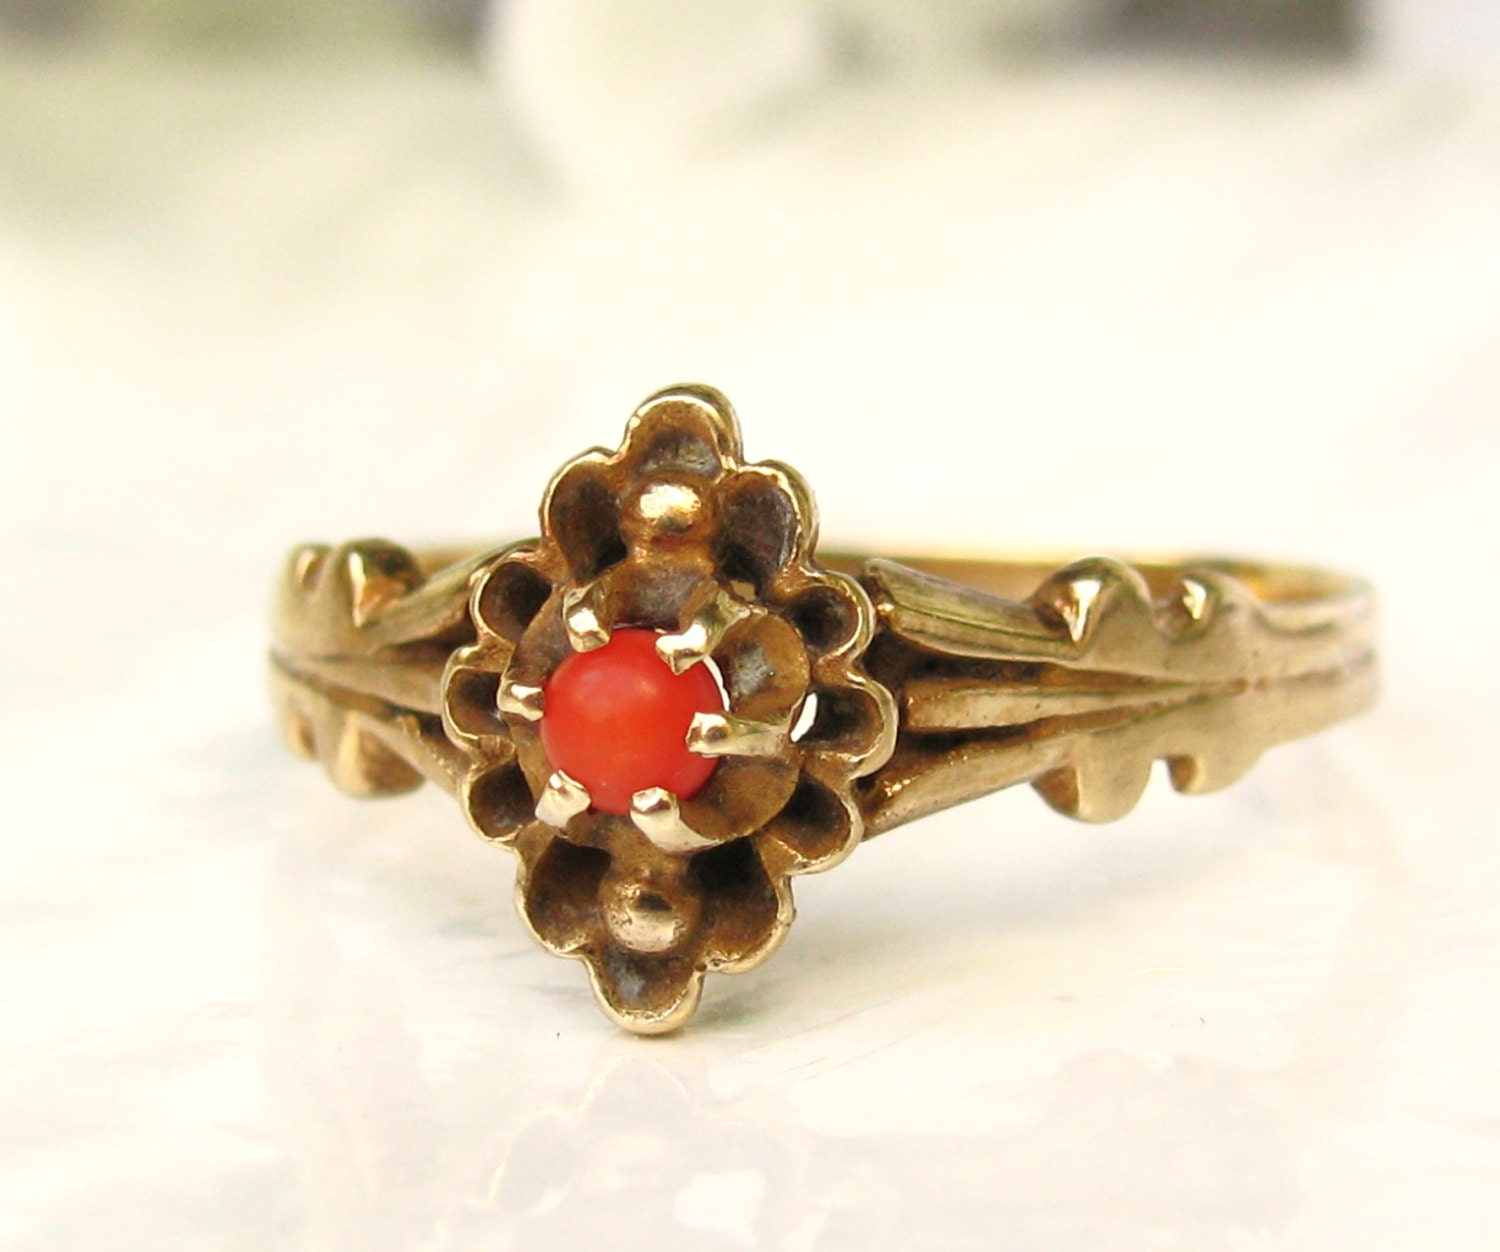 Antique Coral Engagement Ring 14K Yellow Gold Antique Wedding